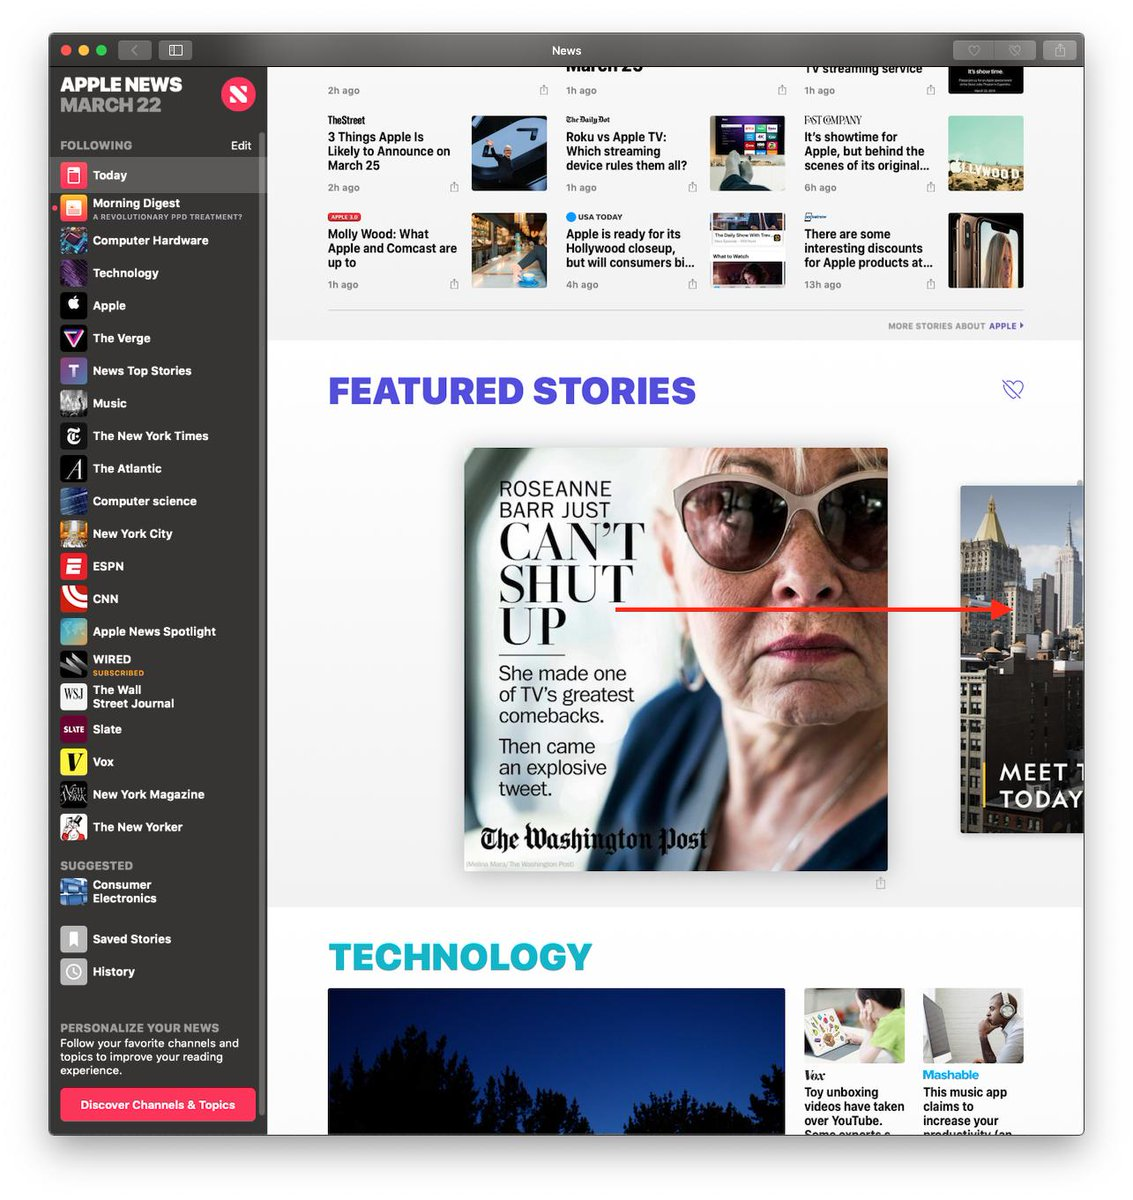 Apple News: I'm playing around with Apple News on the Mac today